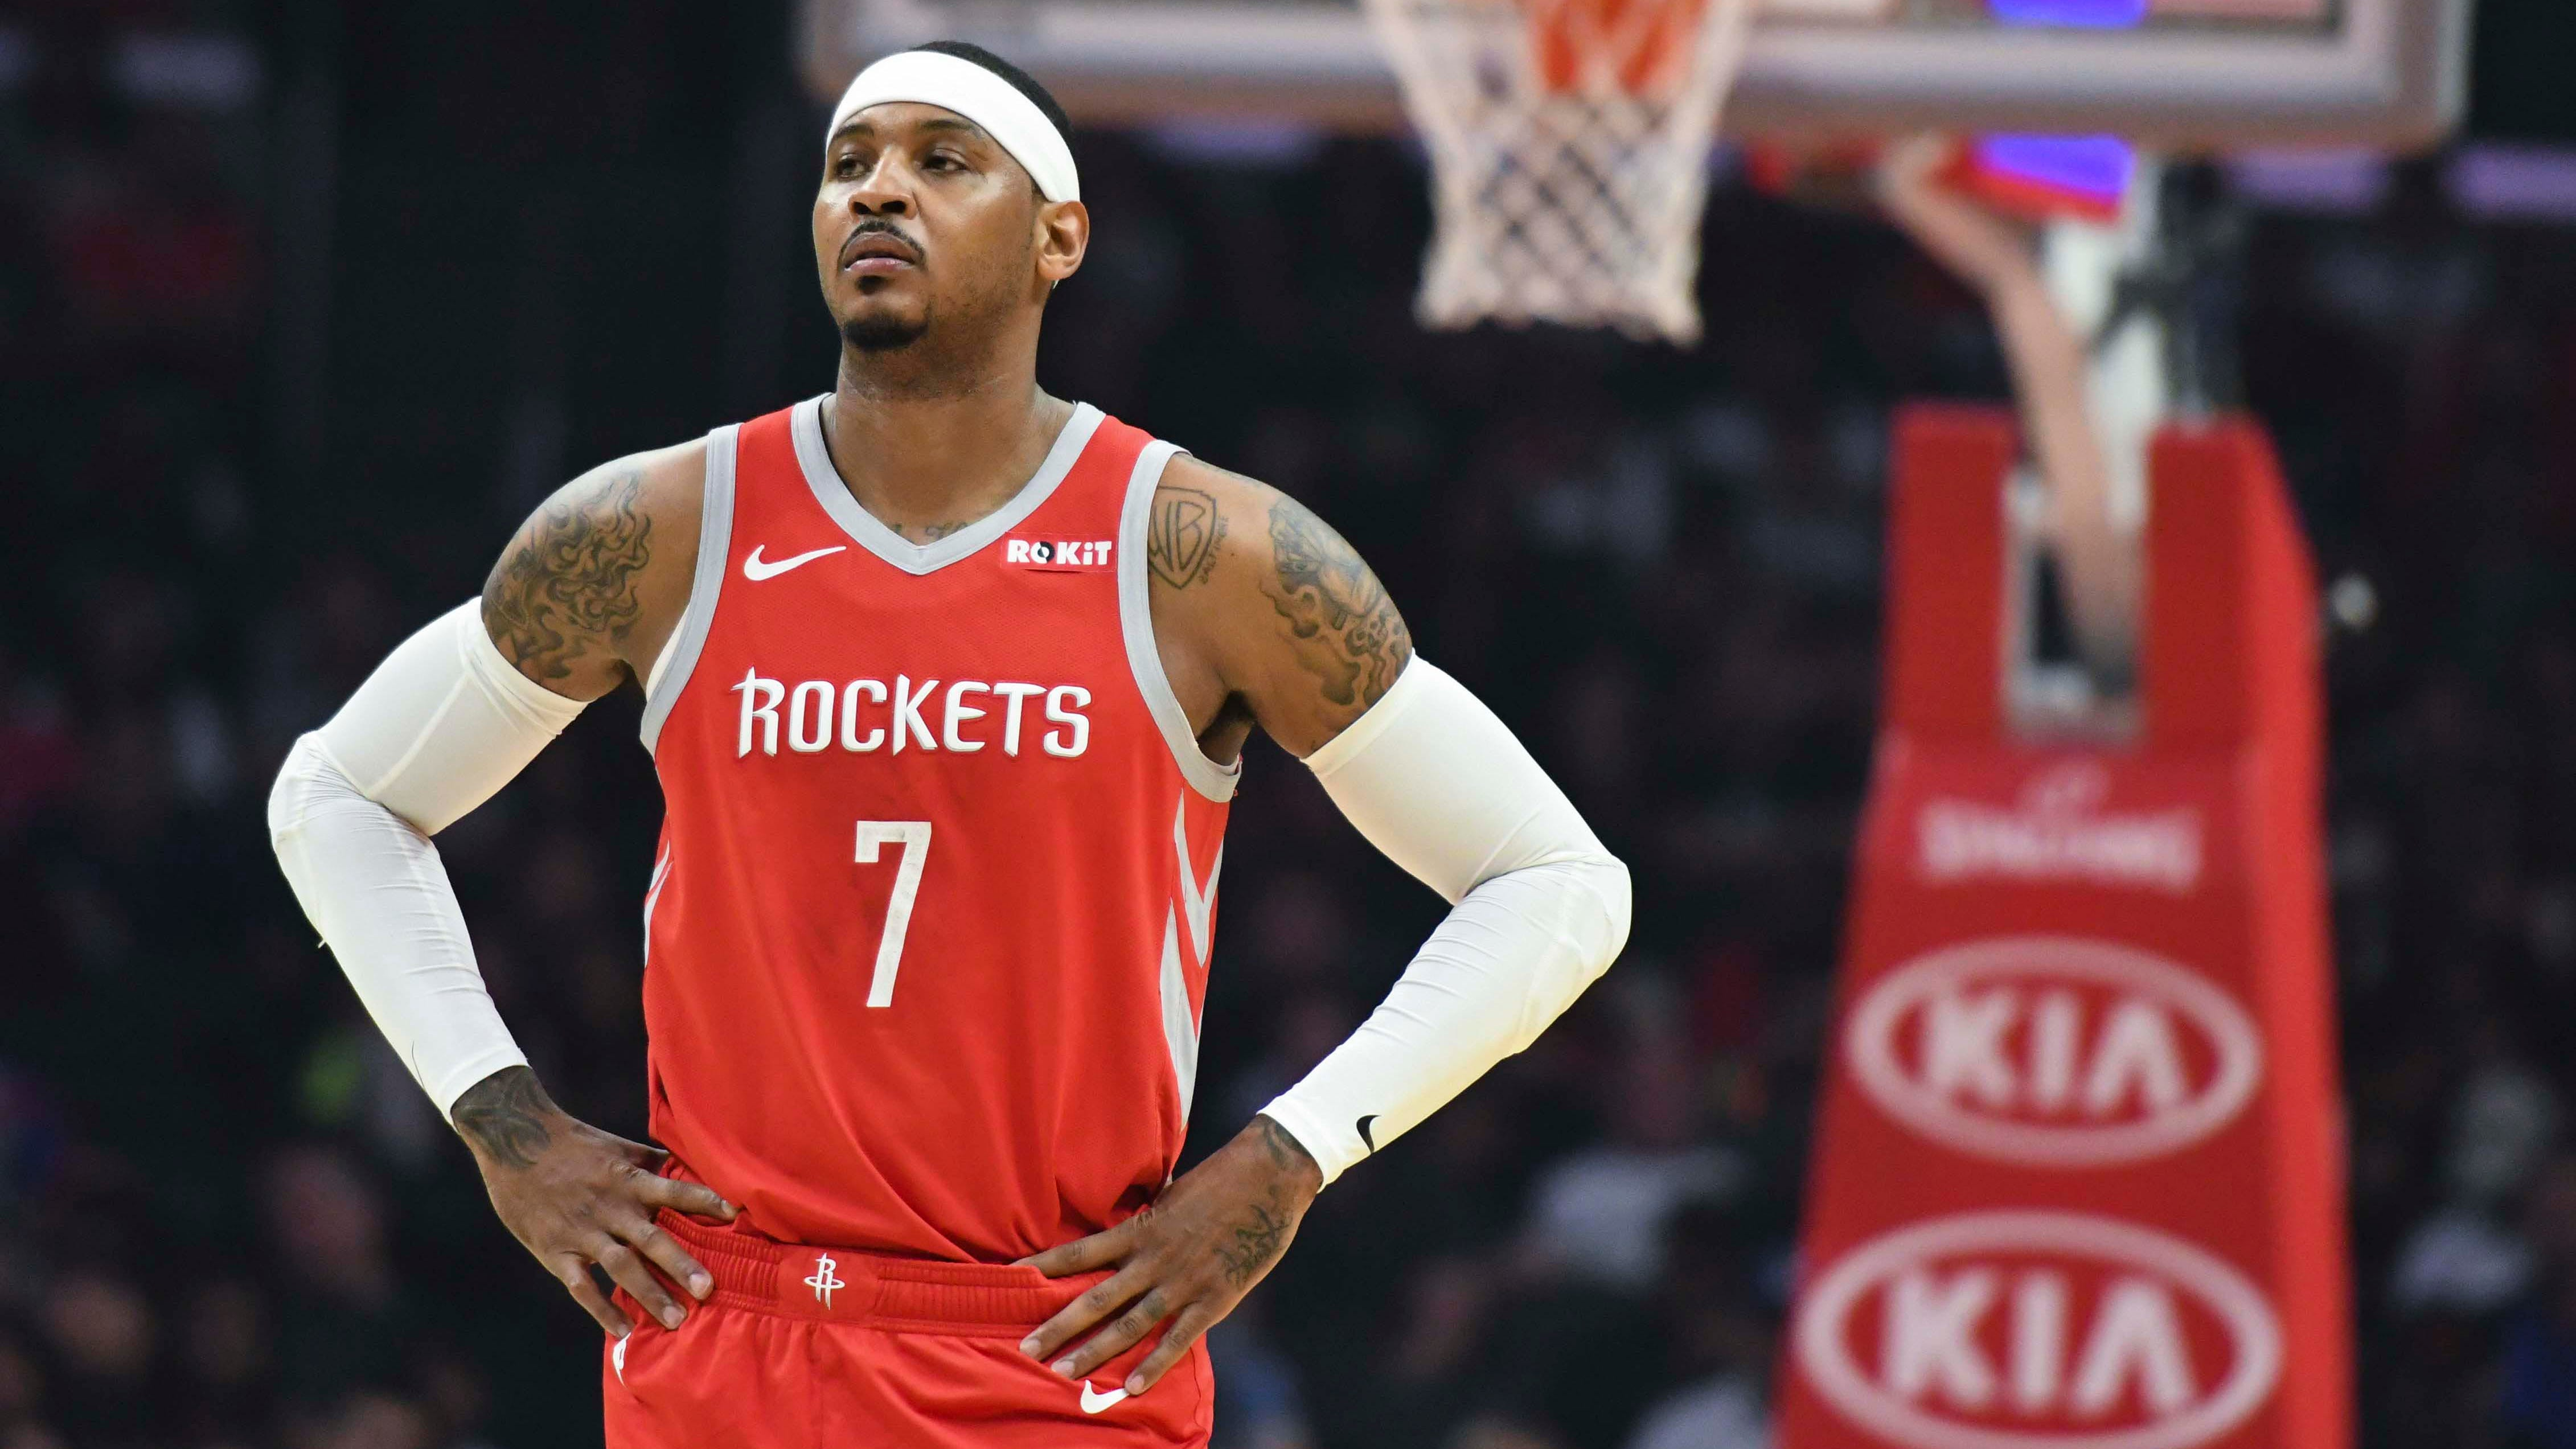 Houston Rockets forward Carmelo Anthony (7) watches a teammate shoot free throws during the second quarter against the Clippers at Staples Center.